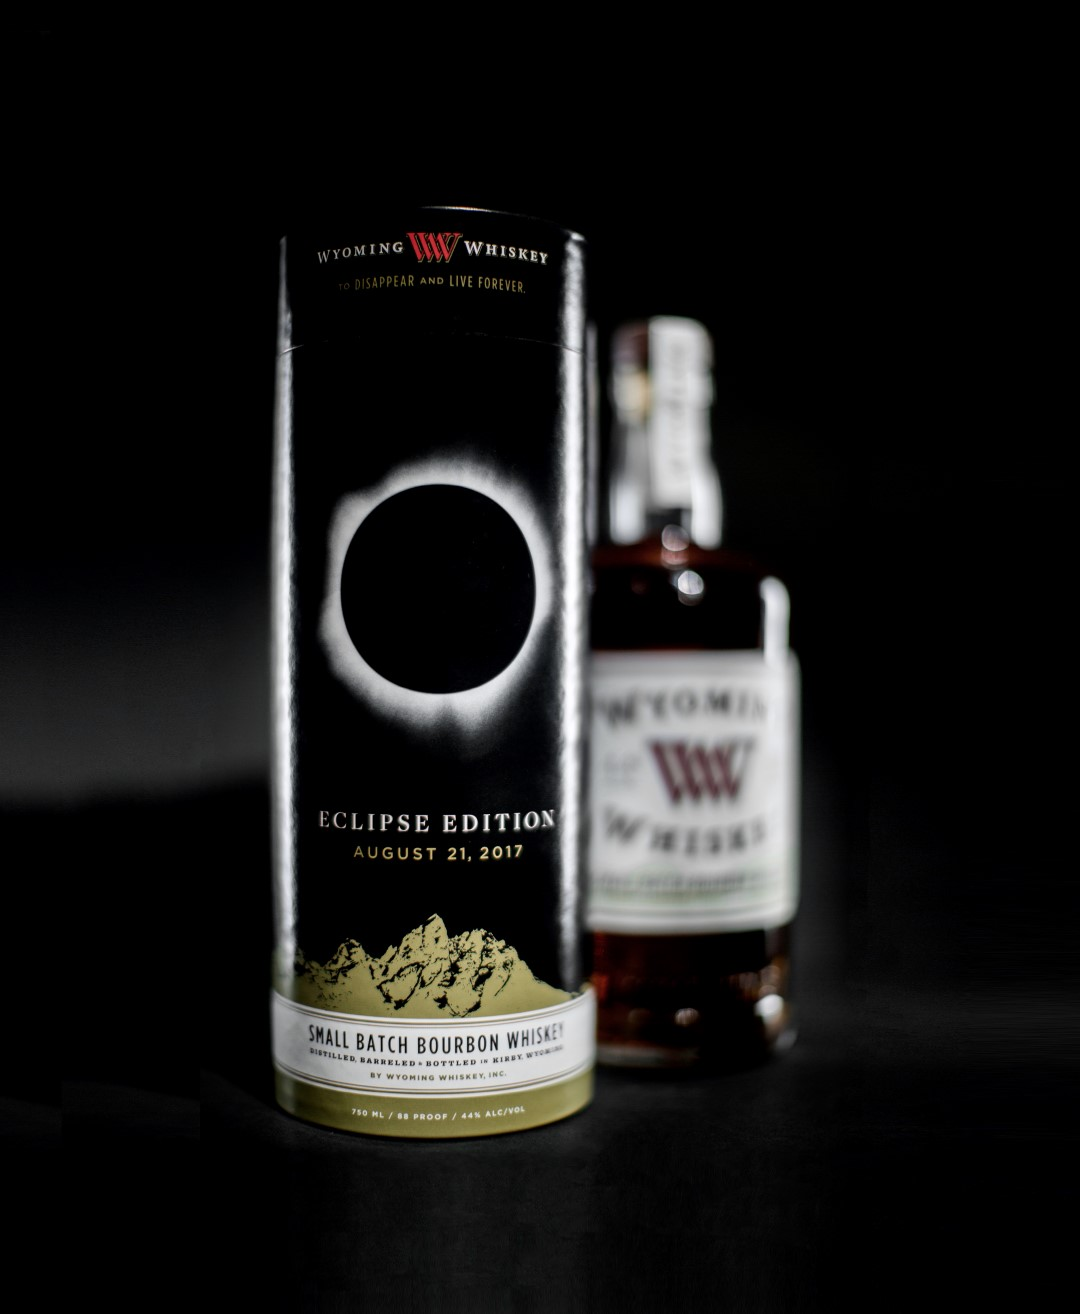 Wyoming Whiskey Eclipse Edition Small Batch Bourbon